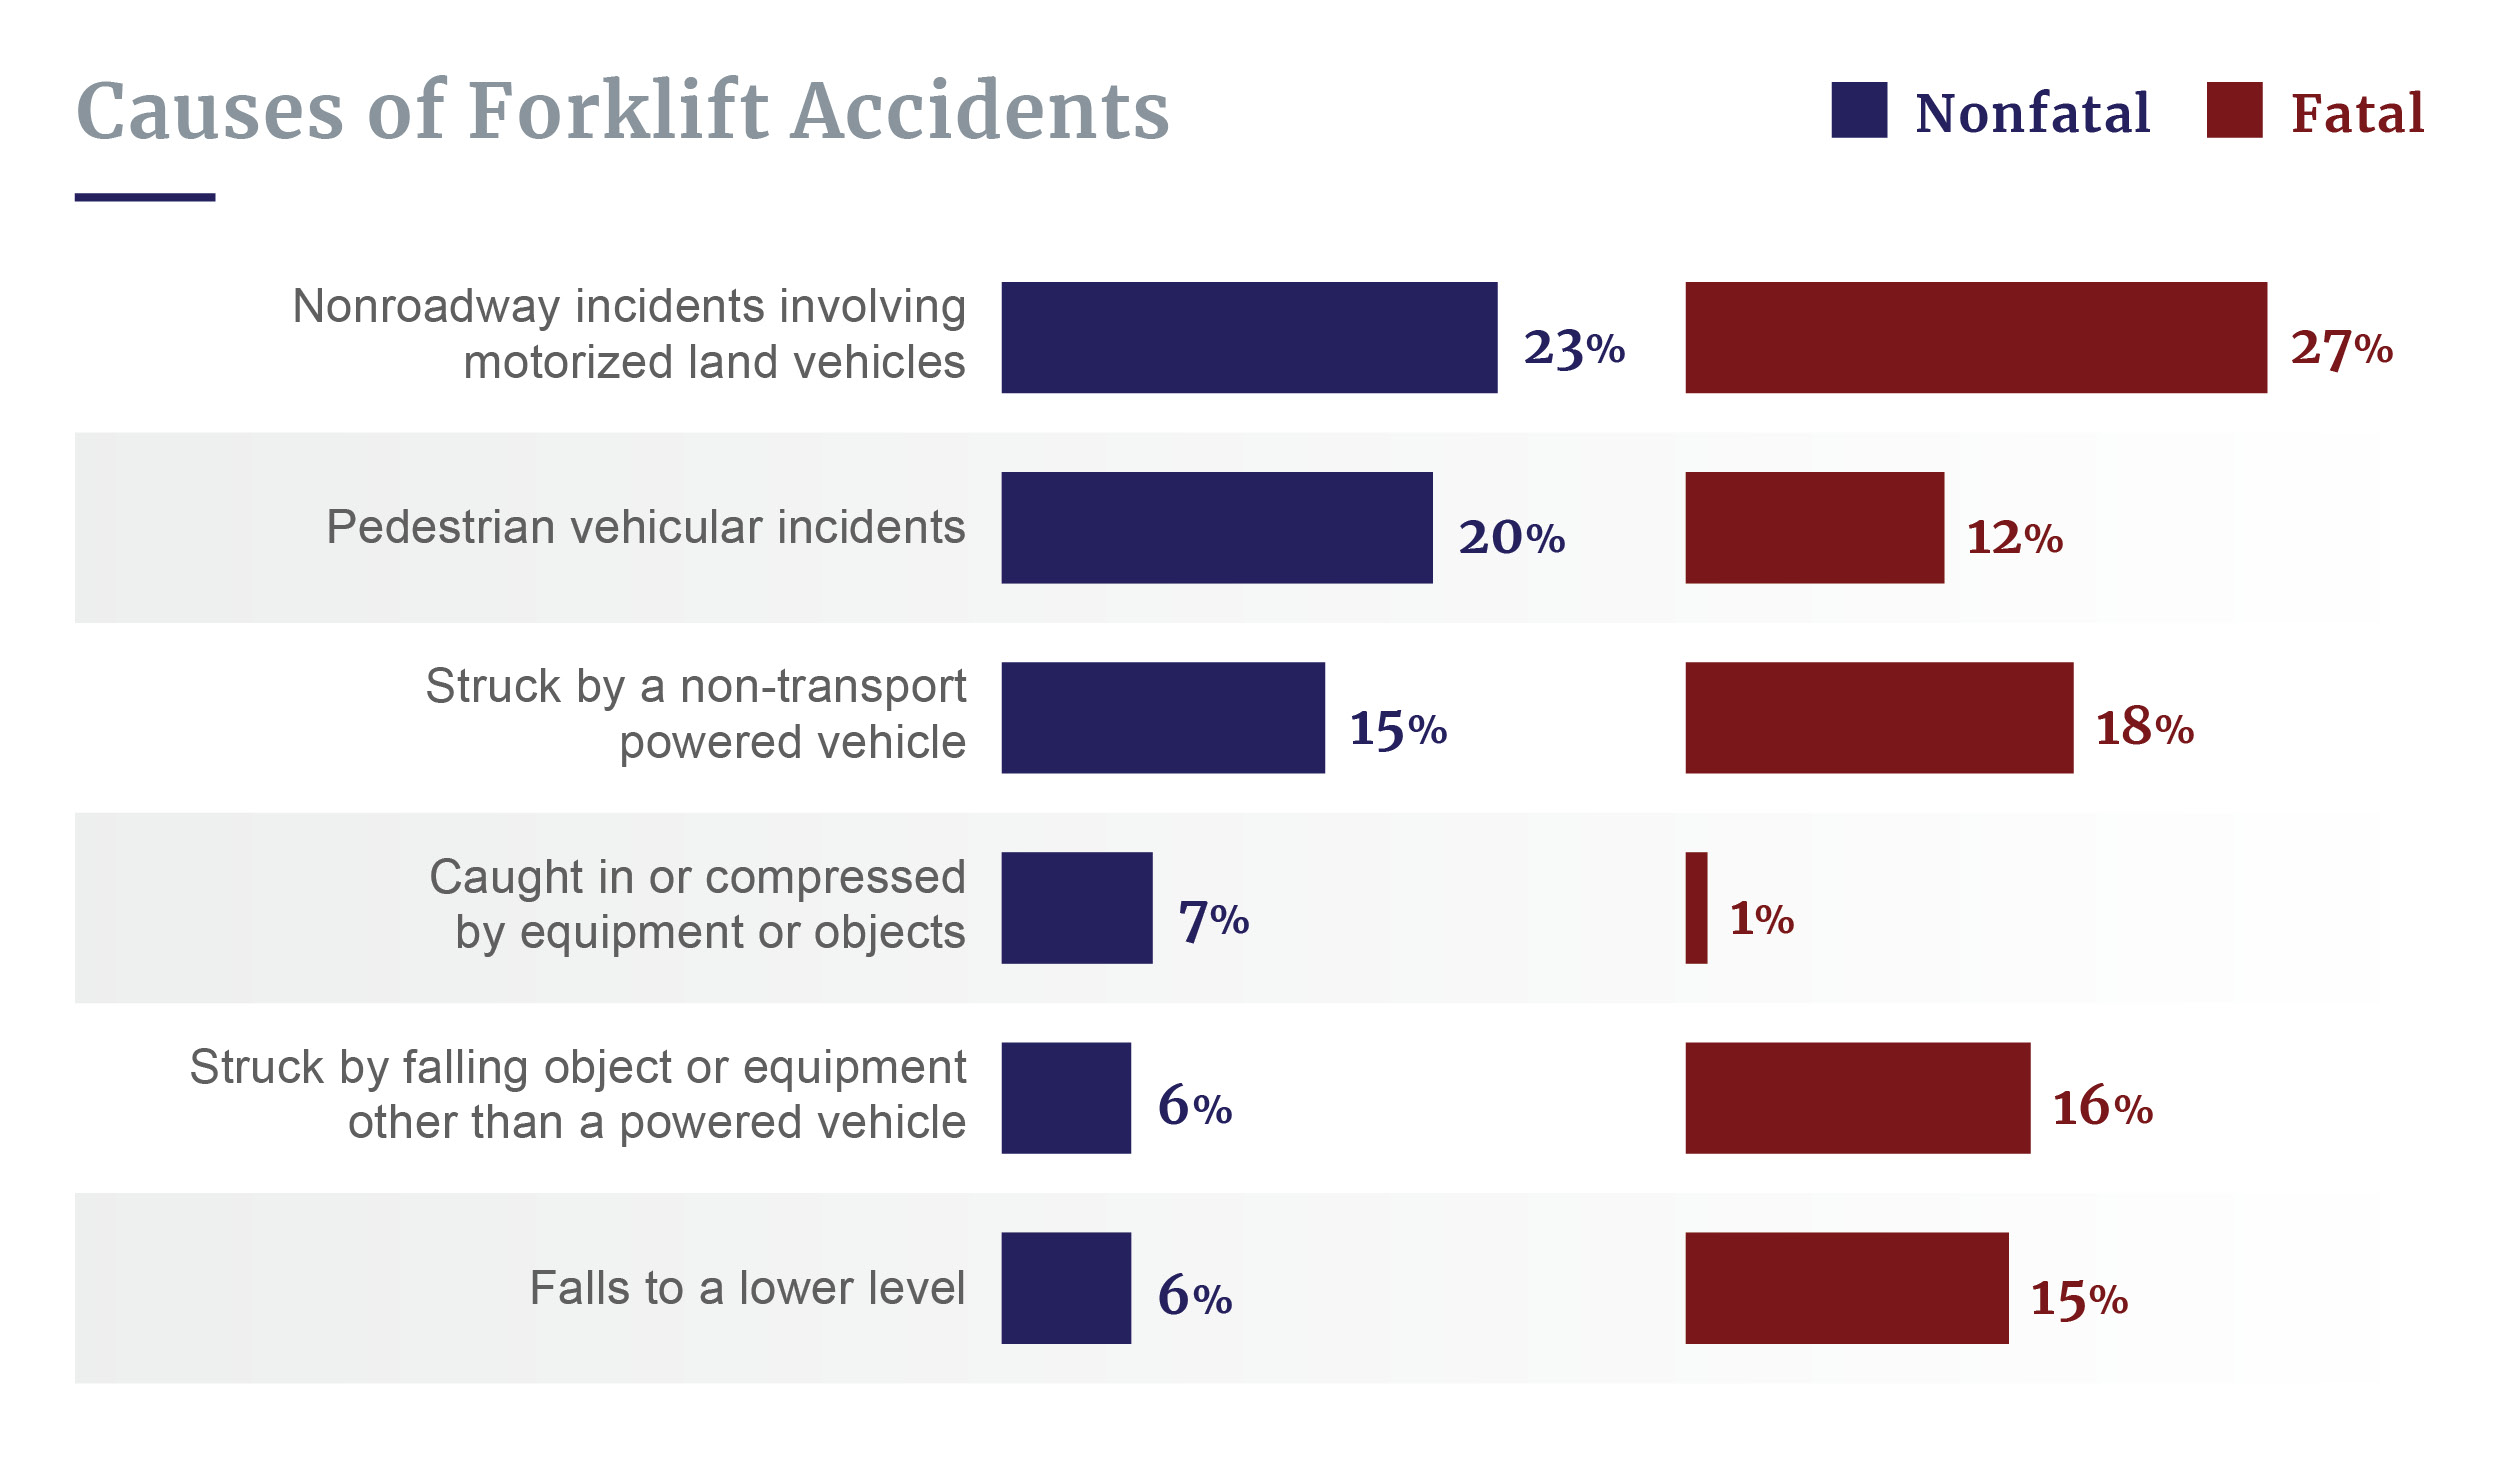 Causes of forklift accidents